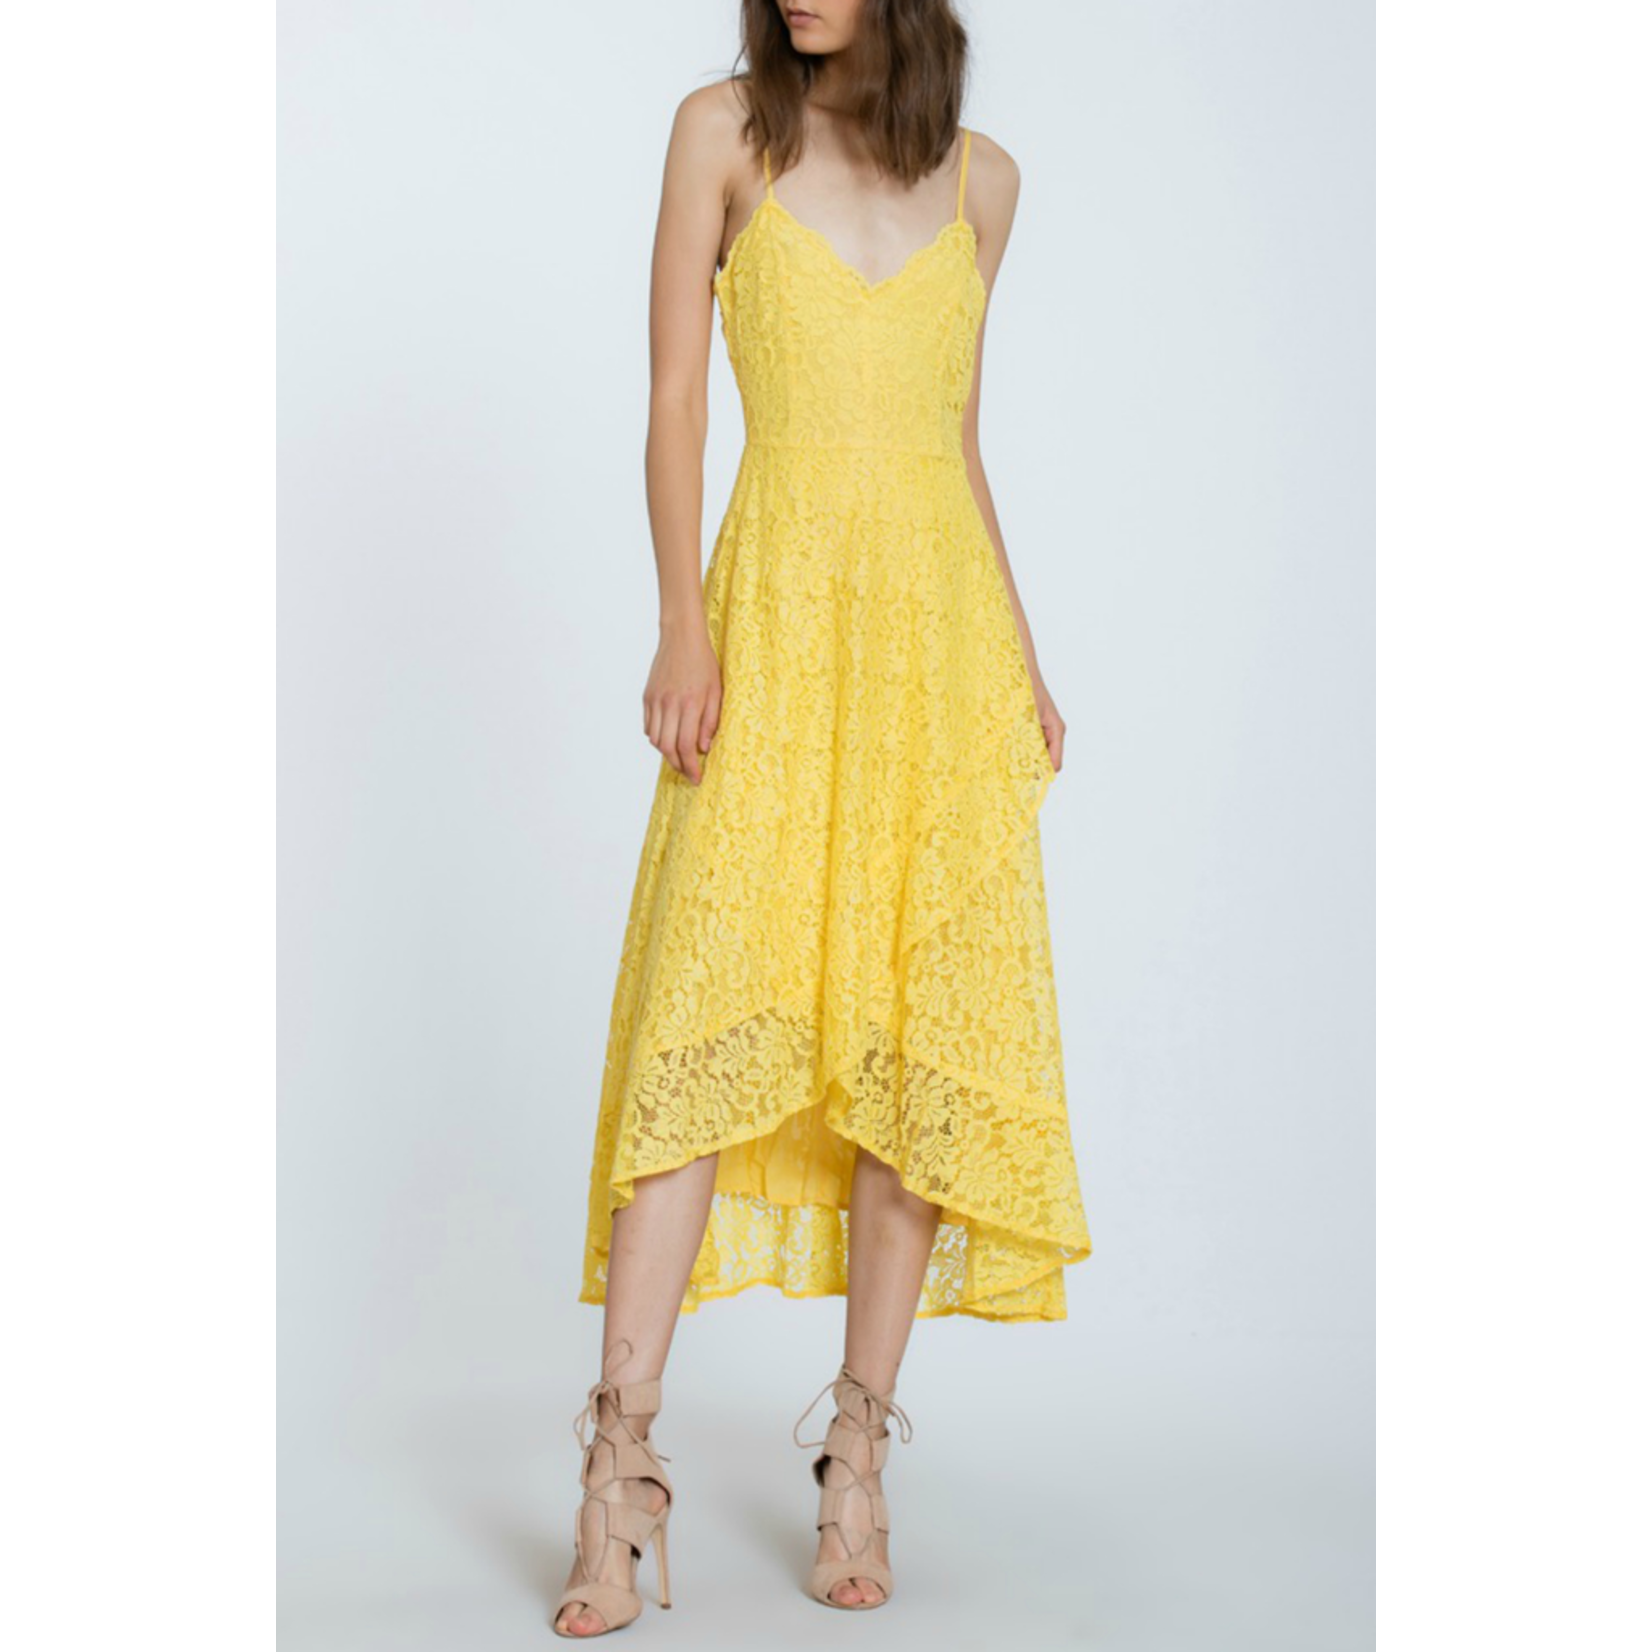 The Room Label Lace Overlay Midi dress, sale item, Was $82